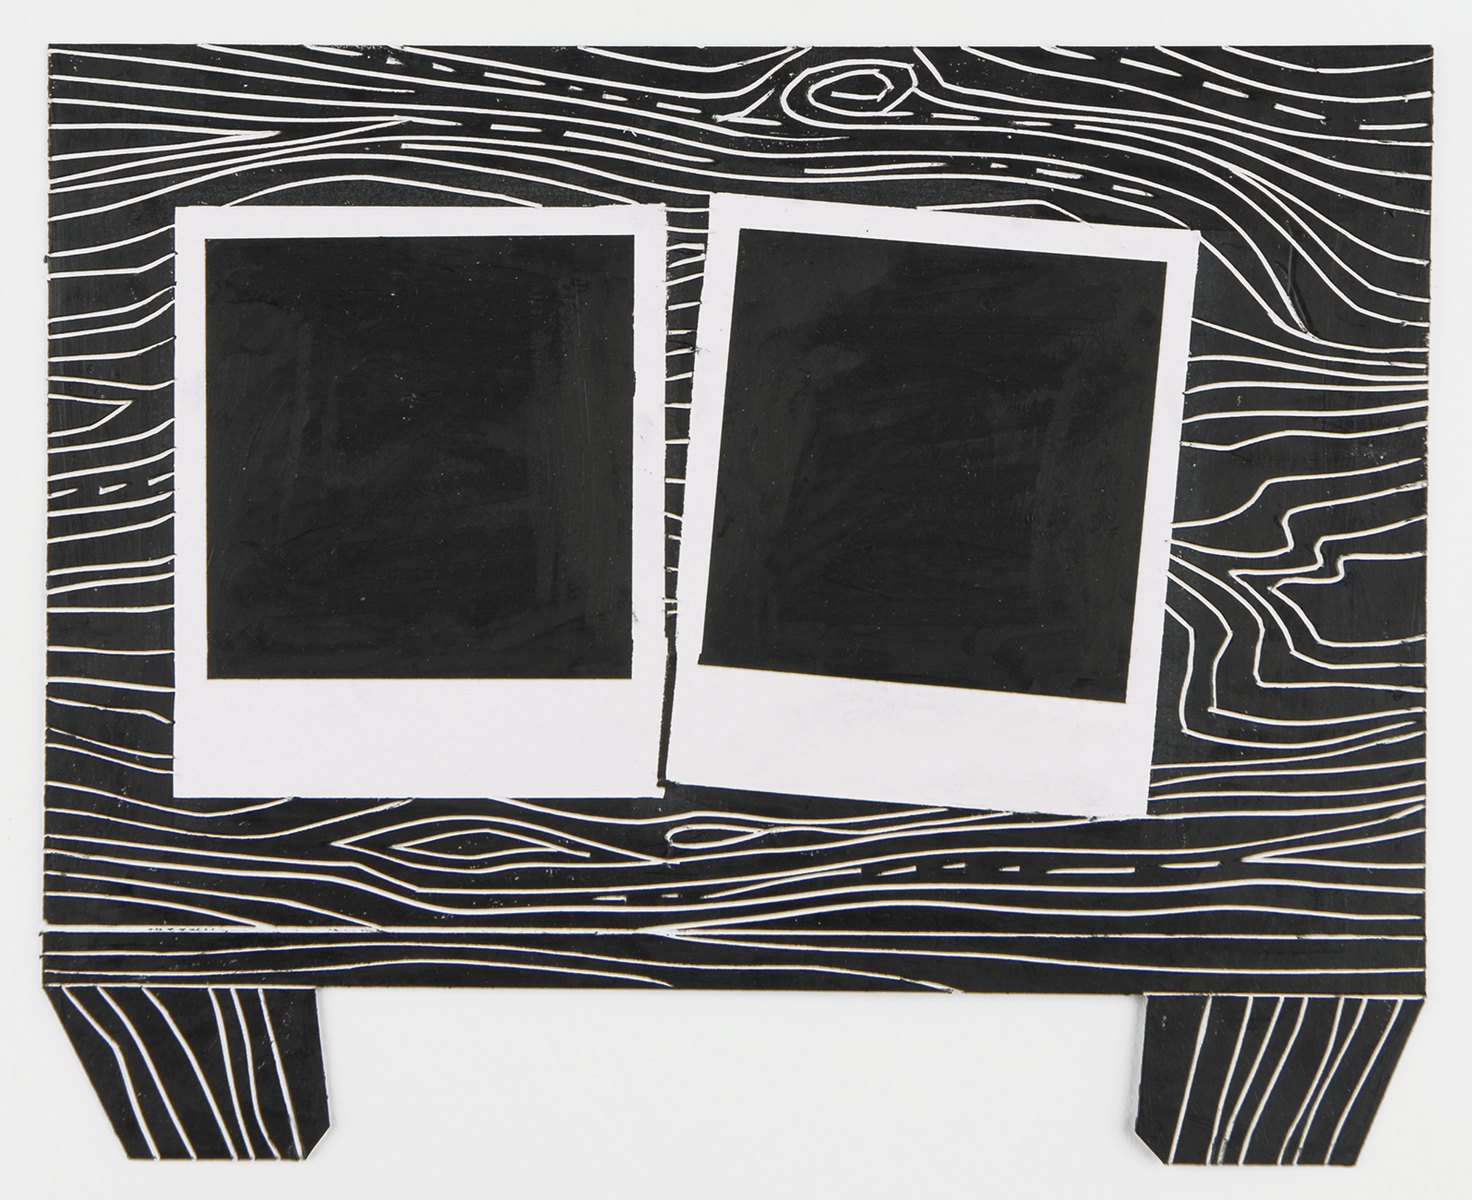 The Black Drawings Polaroids on Table